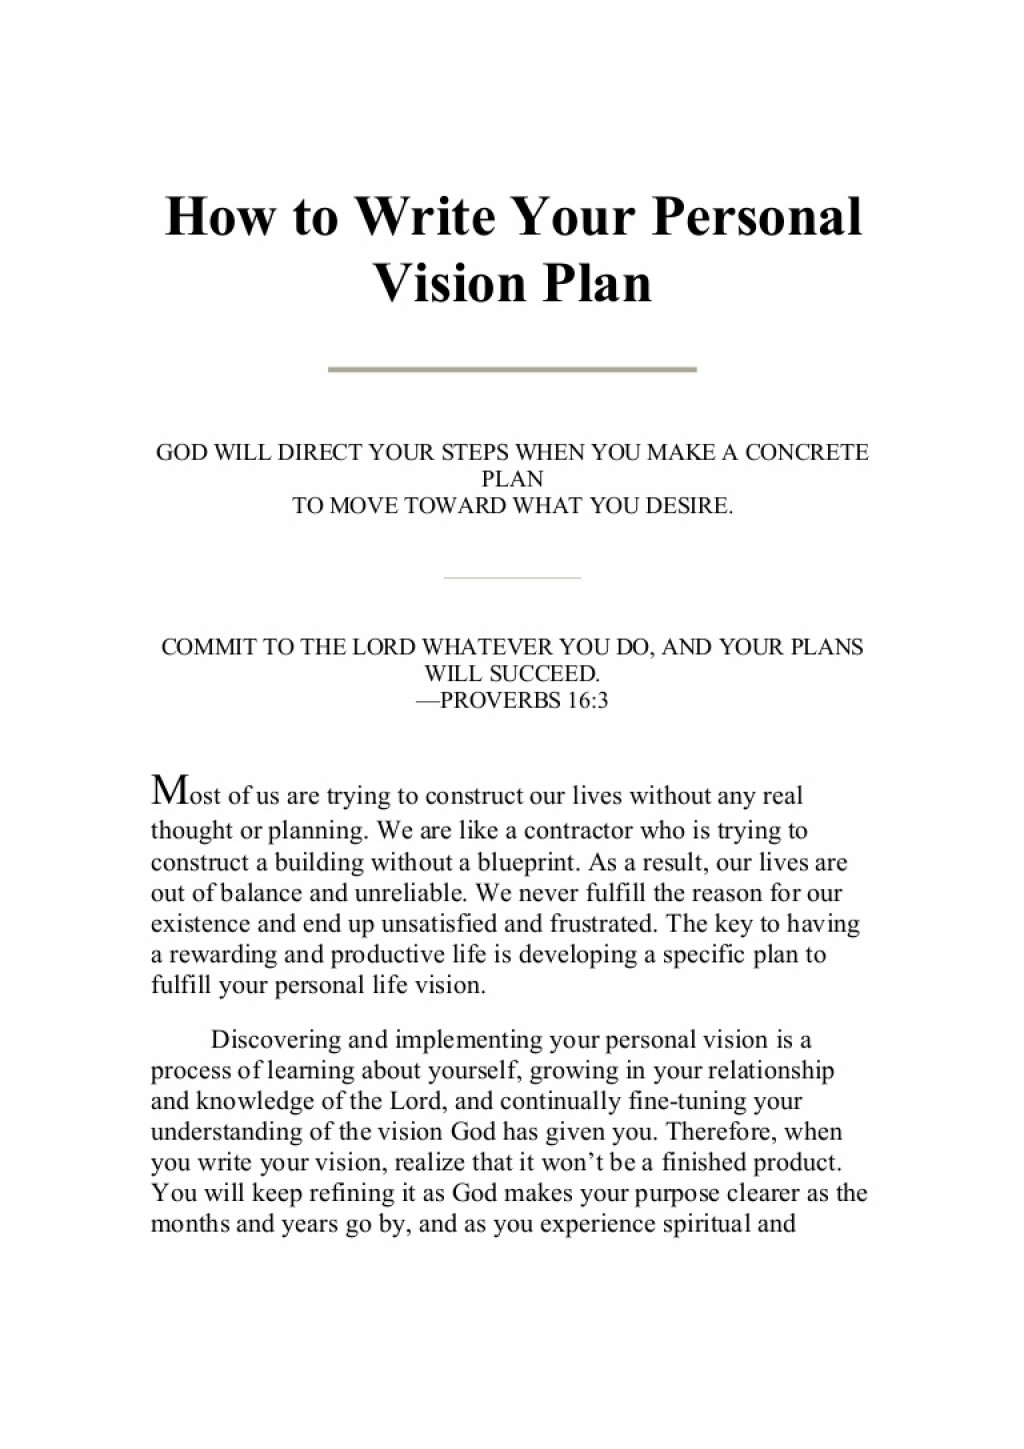 011 Where Do You See Yourself In Years Essay Example Howtowriteyourpersonalvisionplan Phpapp01 Thumbnail Sensational 10 U Large